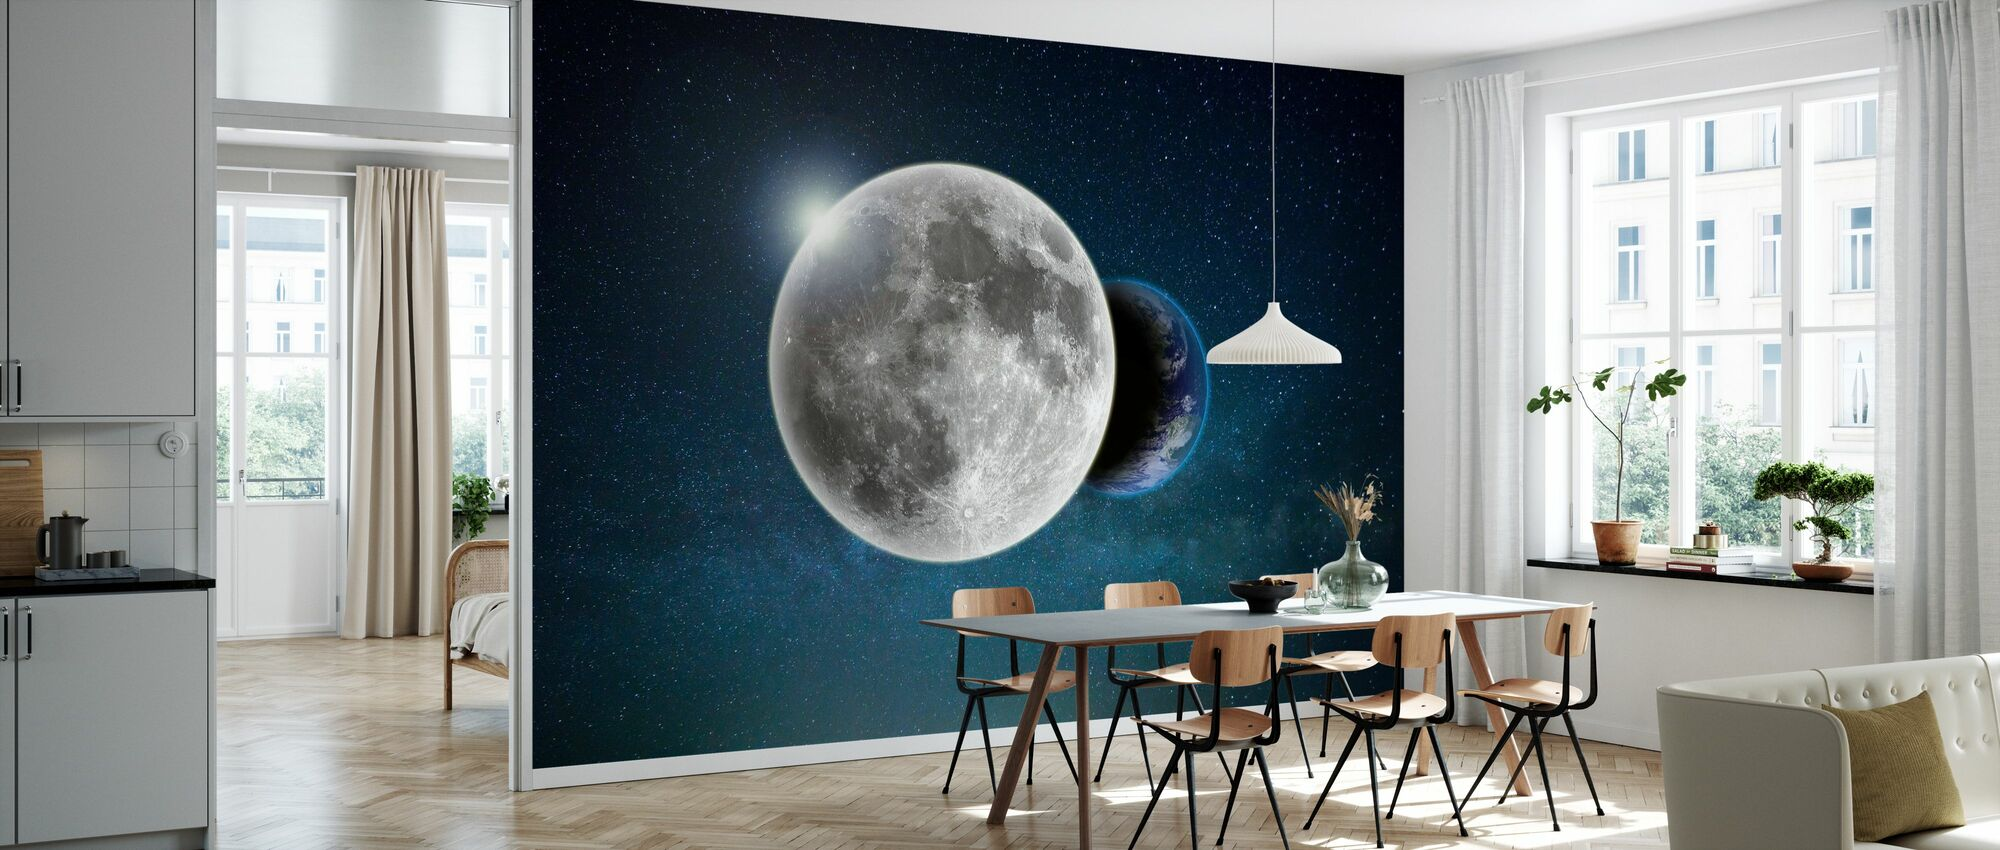 Earth and Moon - Wallpaper - Kitchen